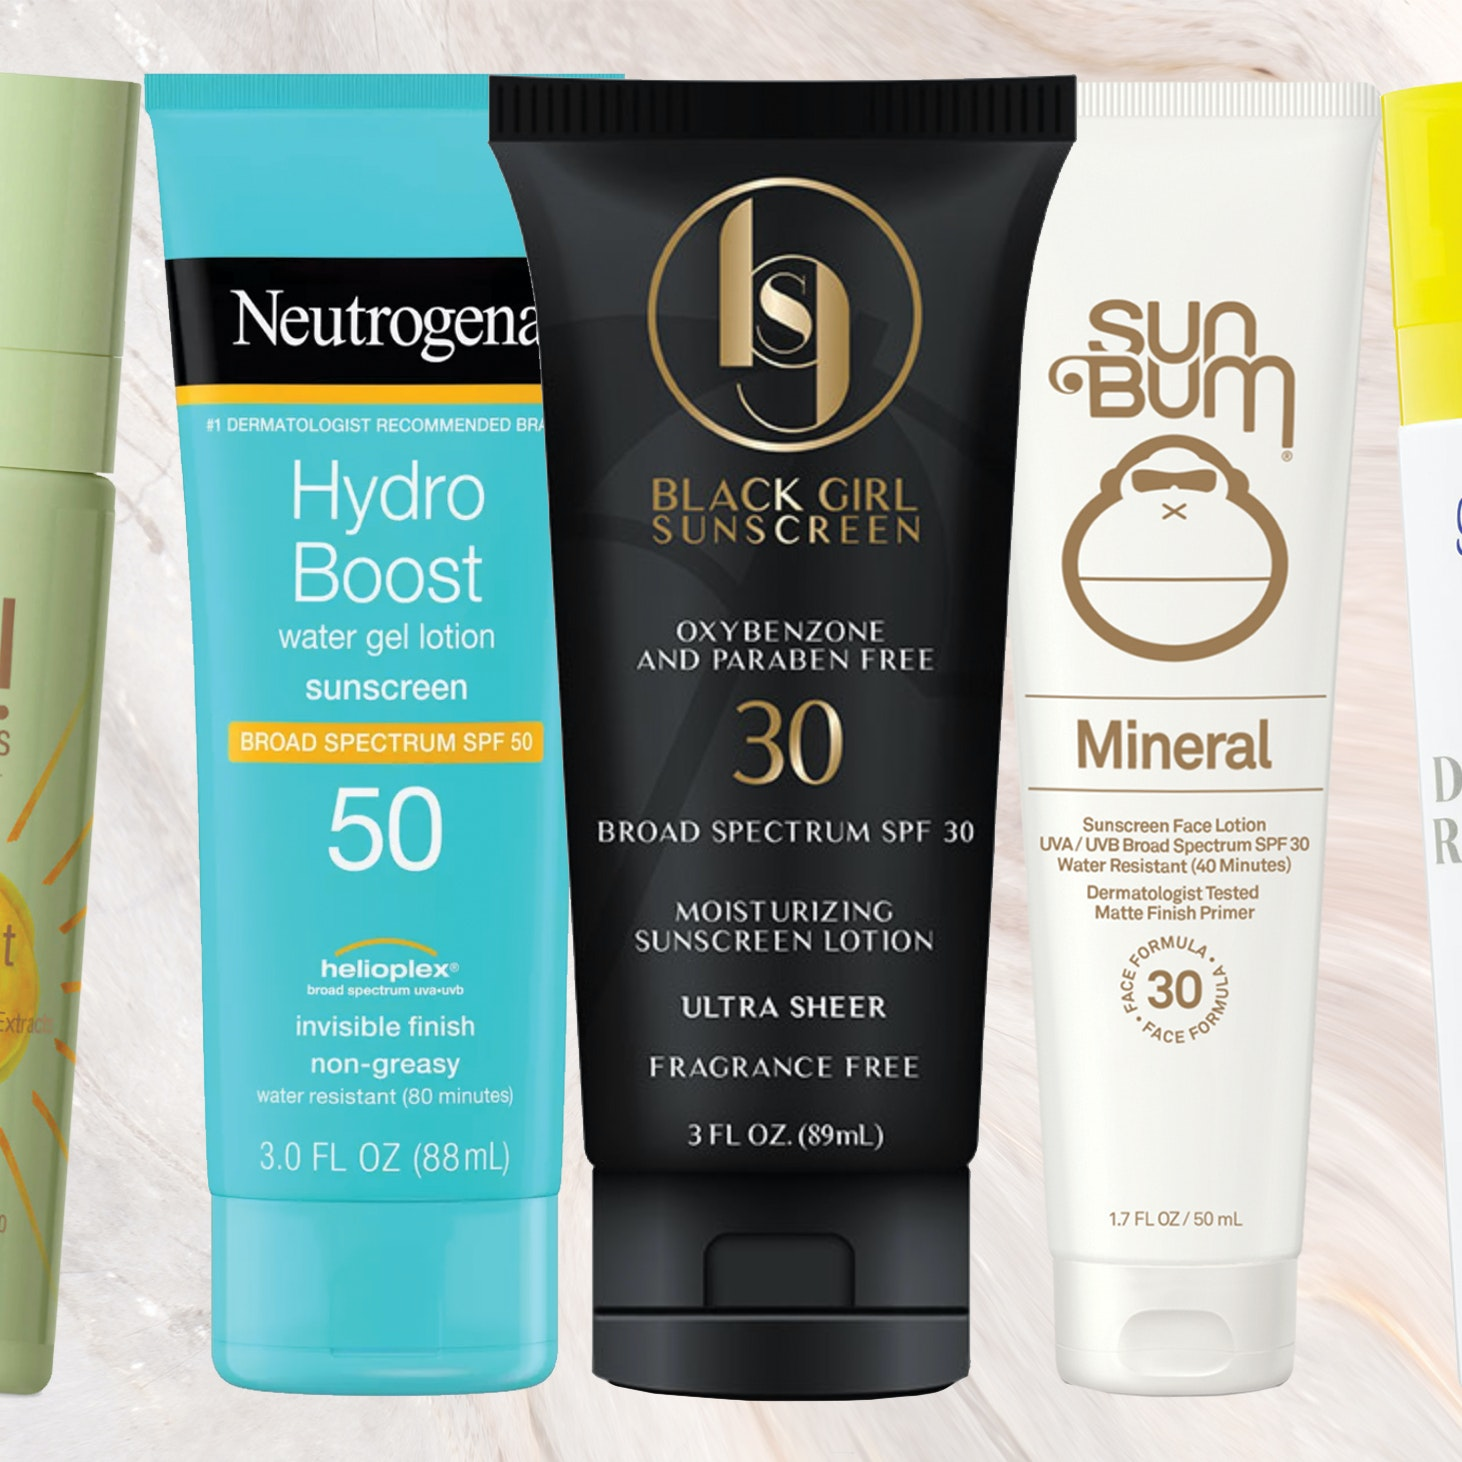 14 of the Best Sunscreens For Face, According to Spotlyte Editors